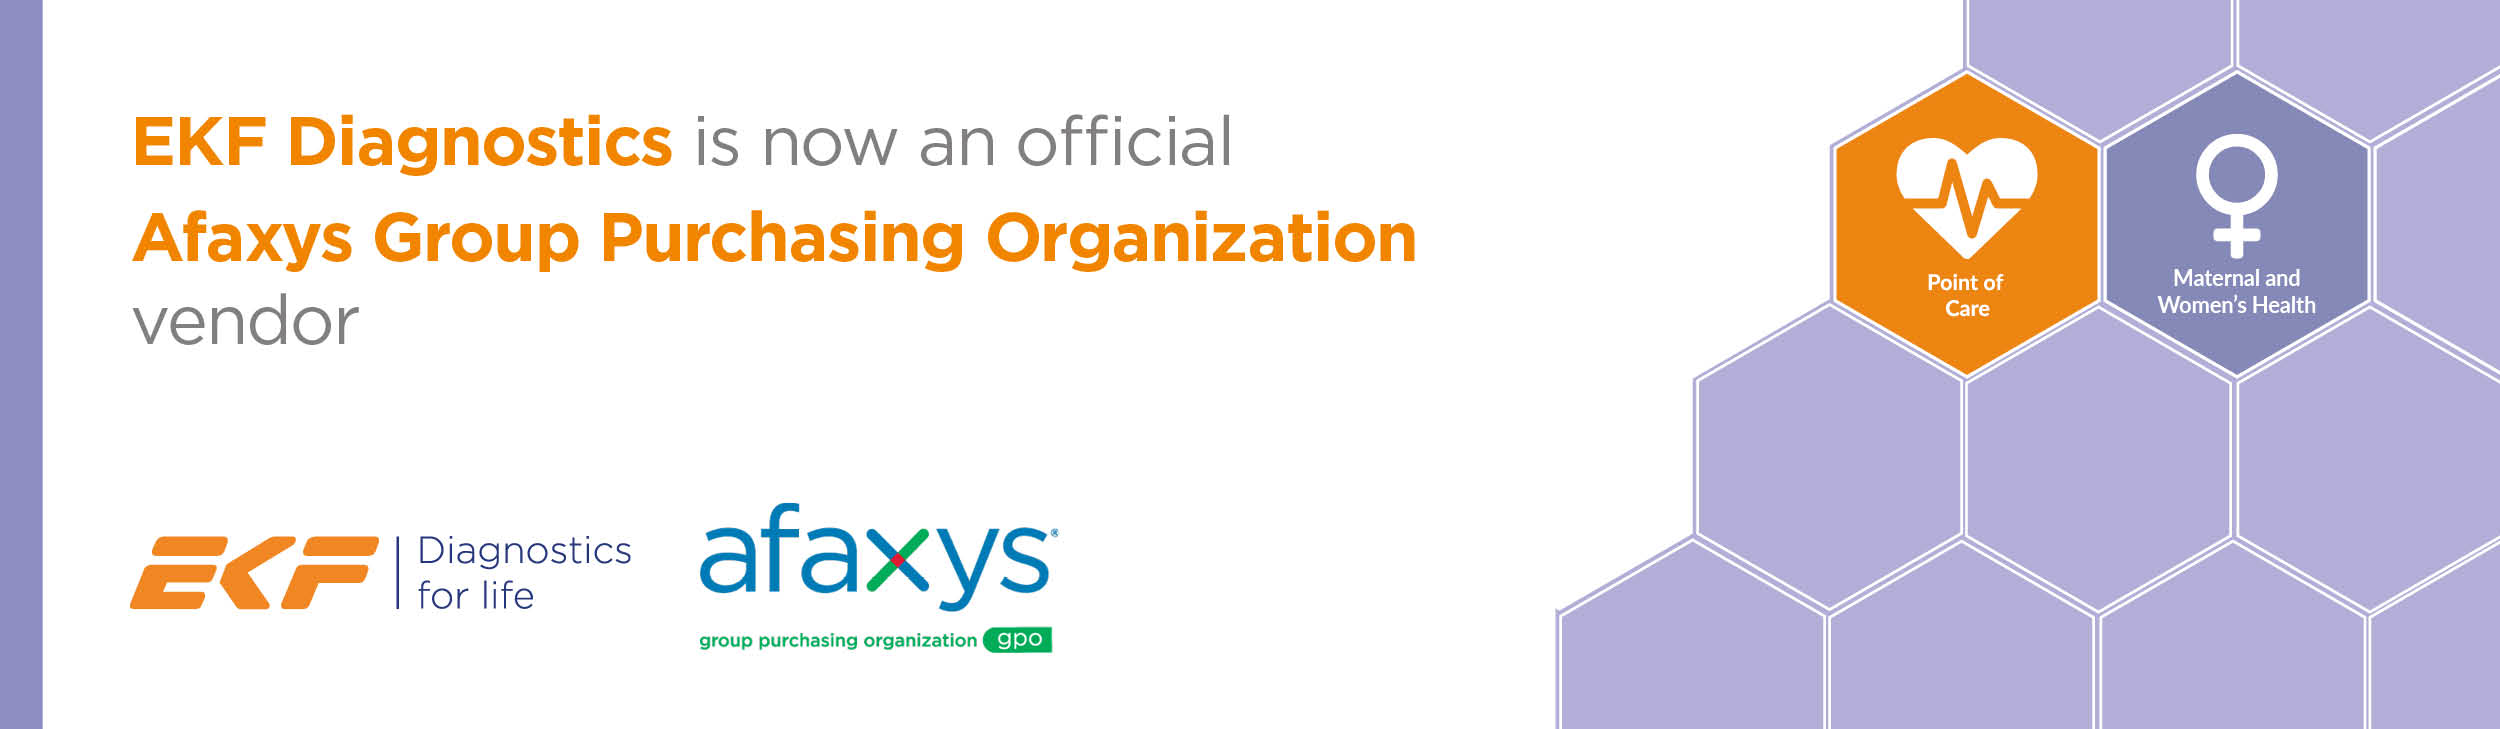 EKF-Afaxys-partnership-announcement-banner